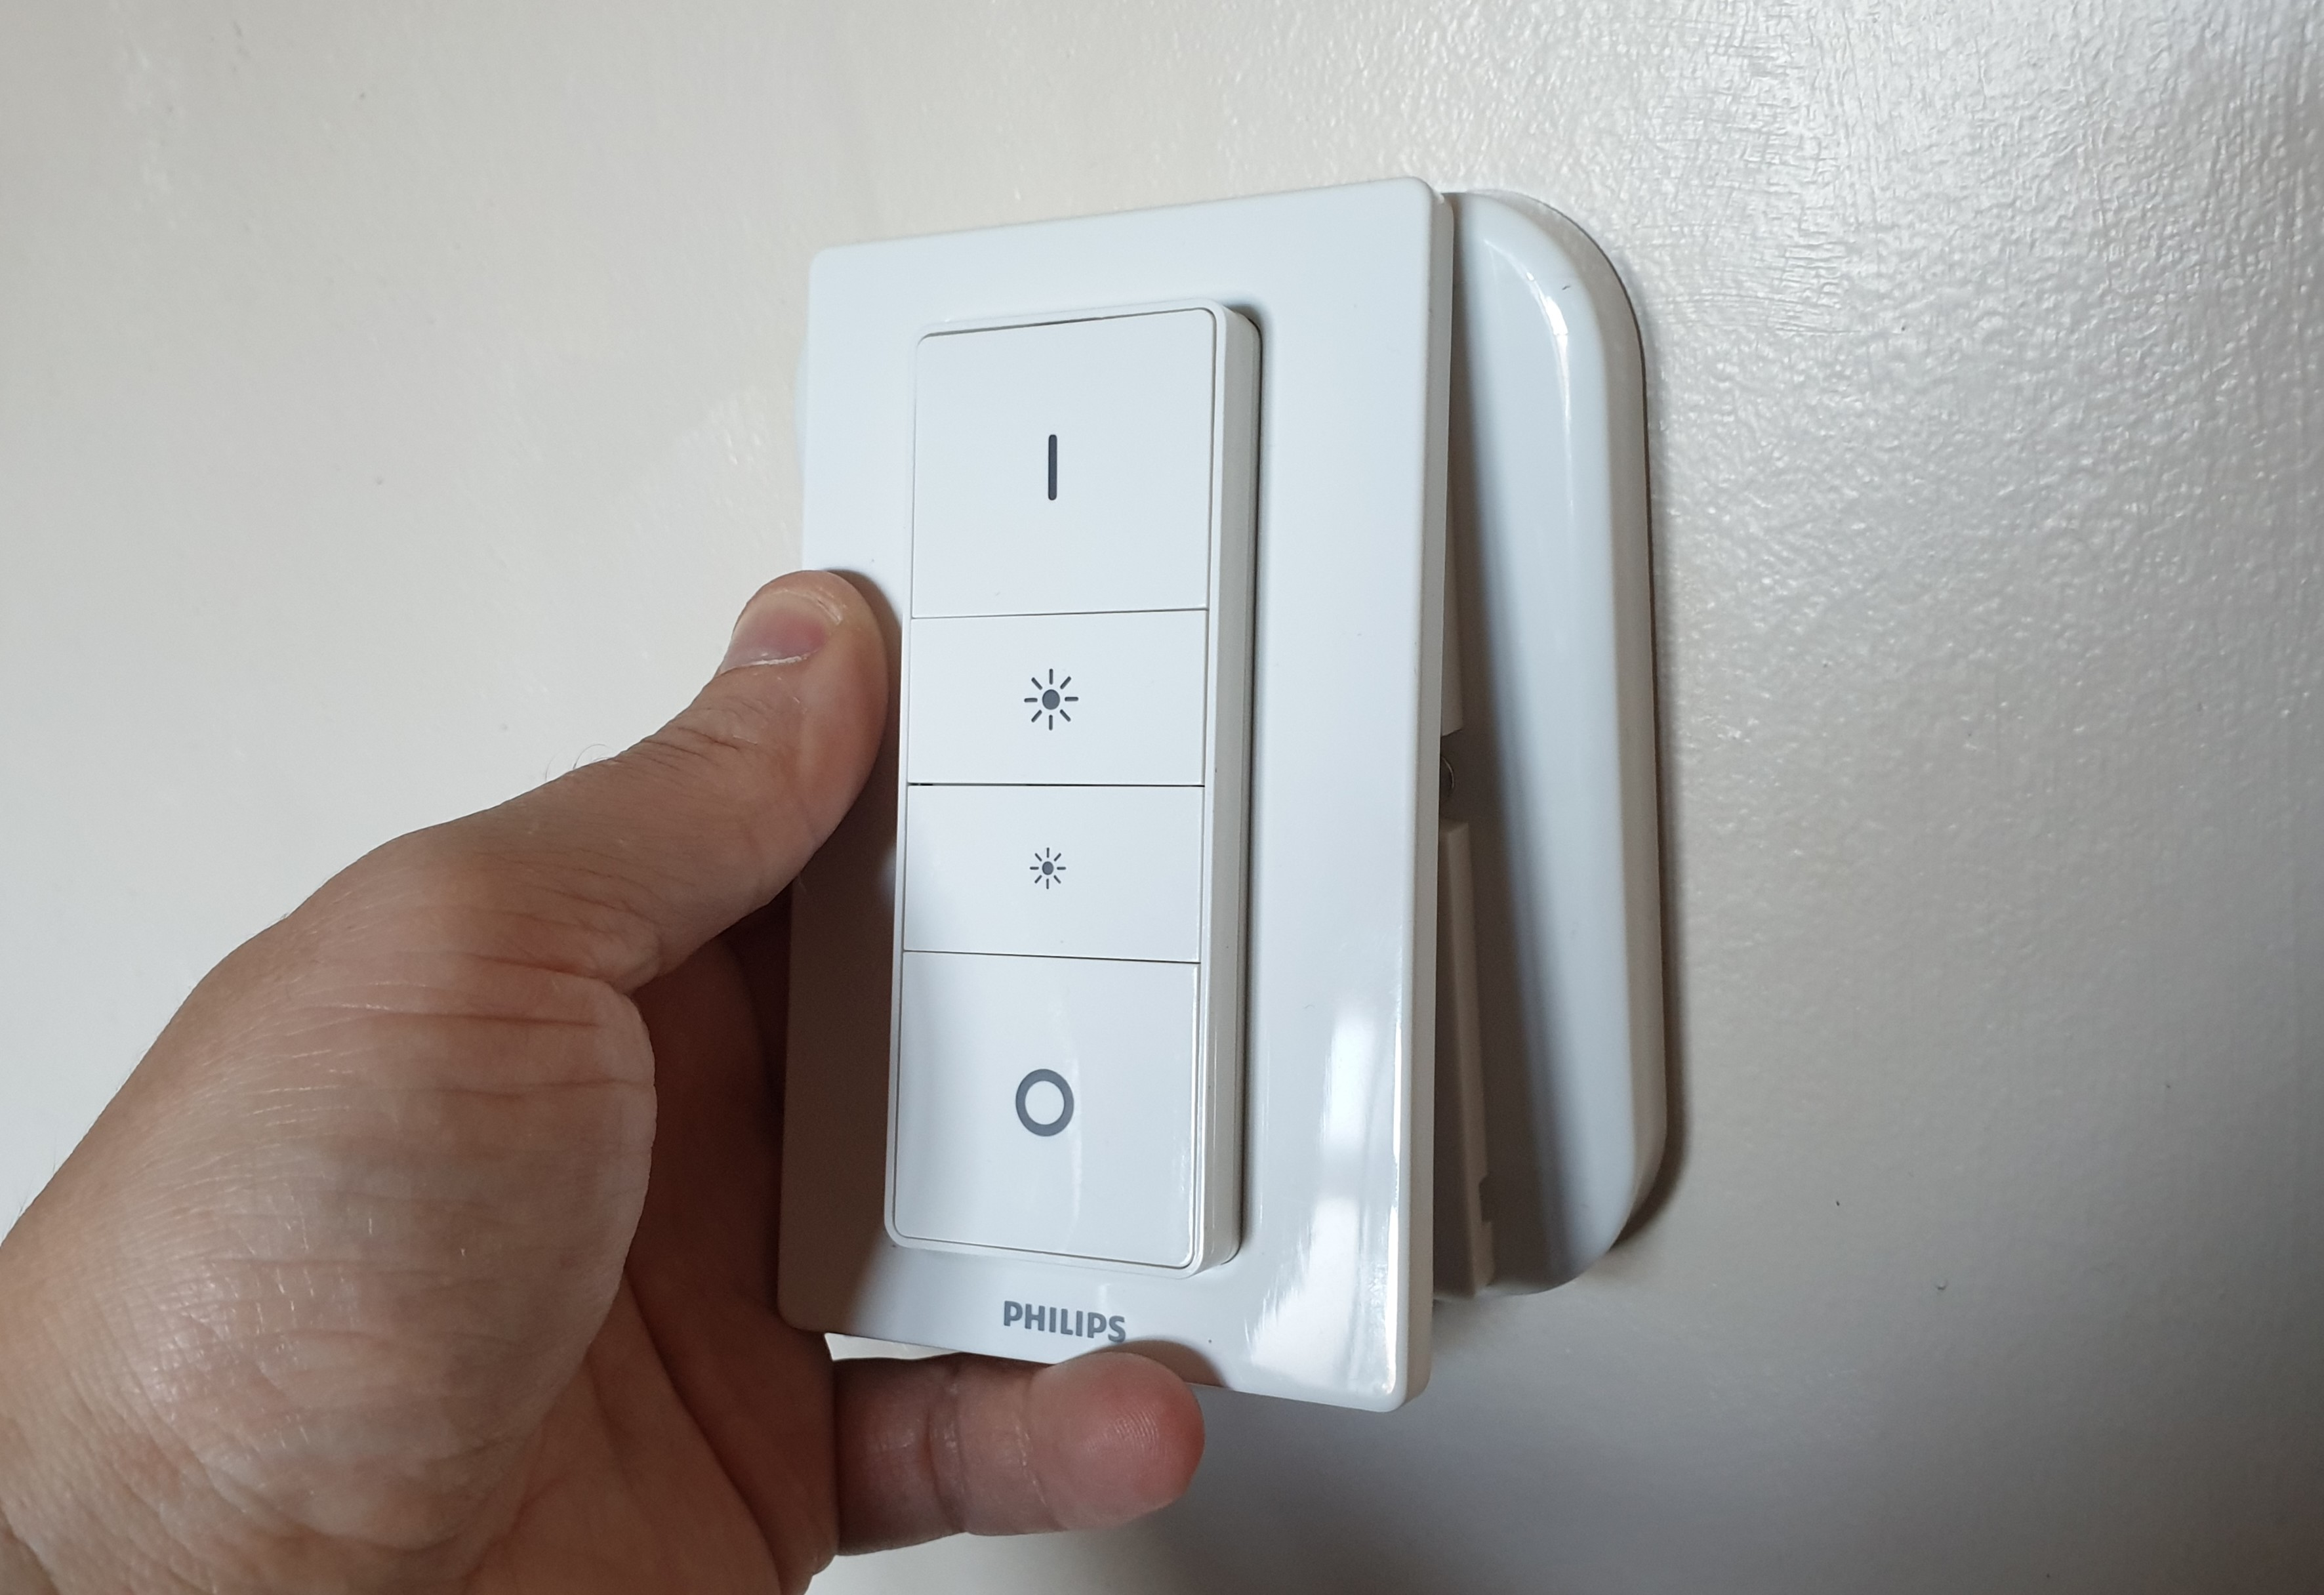 The Hue Switch simply pops onto the Samotech SM200 Light Switch Cover